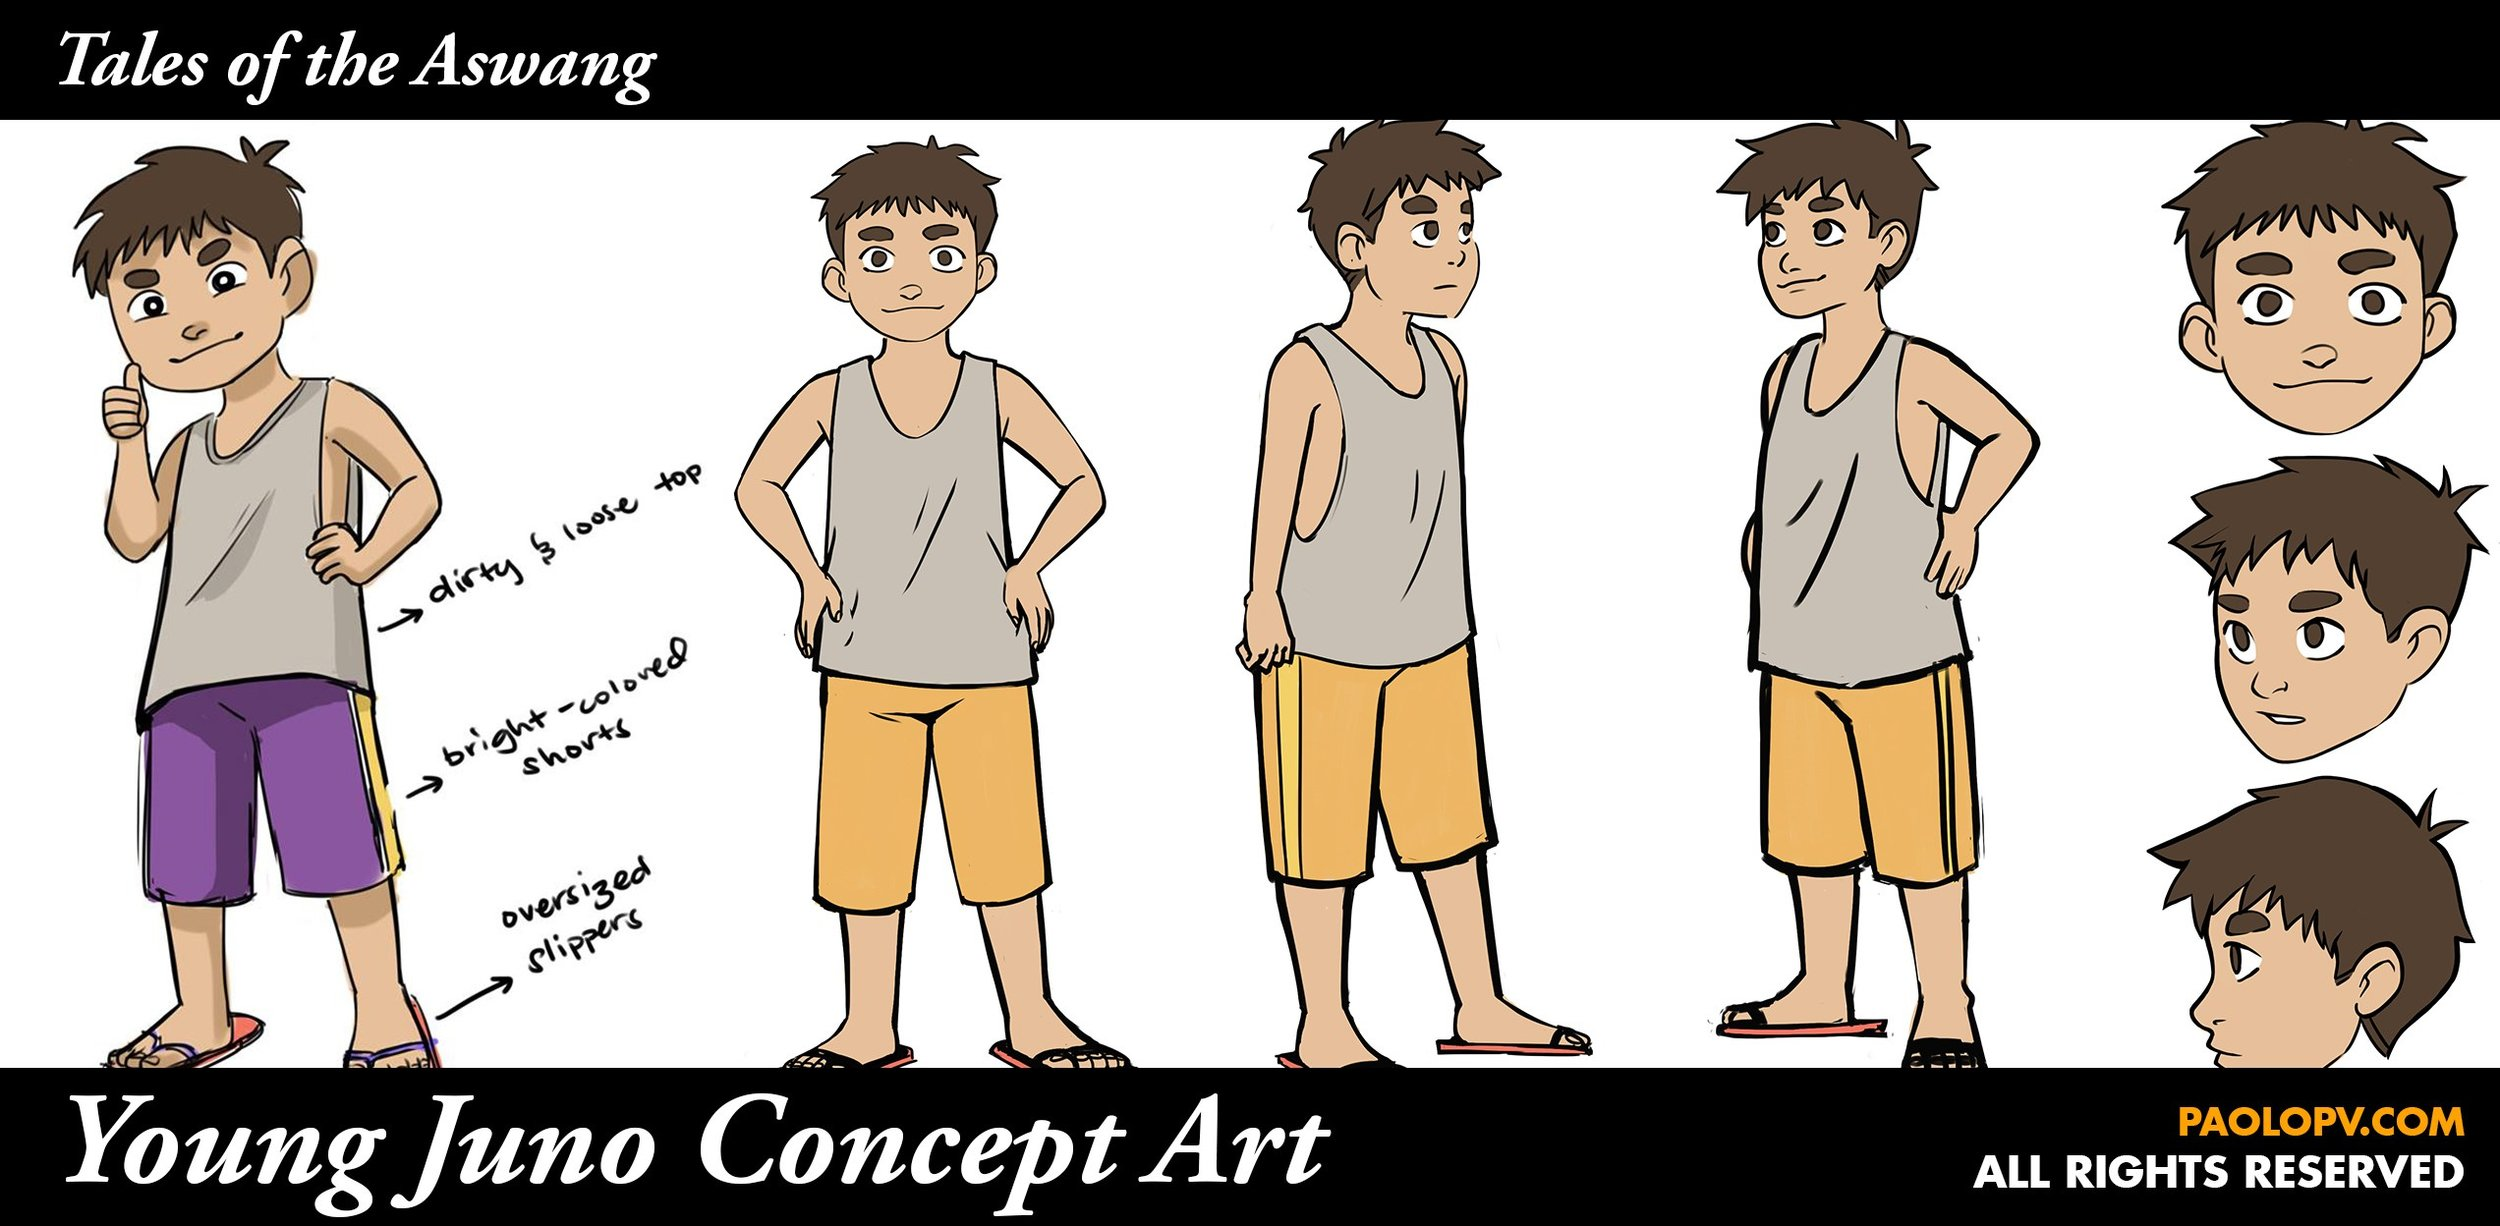 Tales-of-the-Aswang-Concept-Art-Young-Juno.jpg